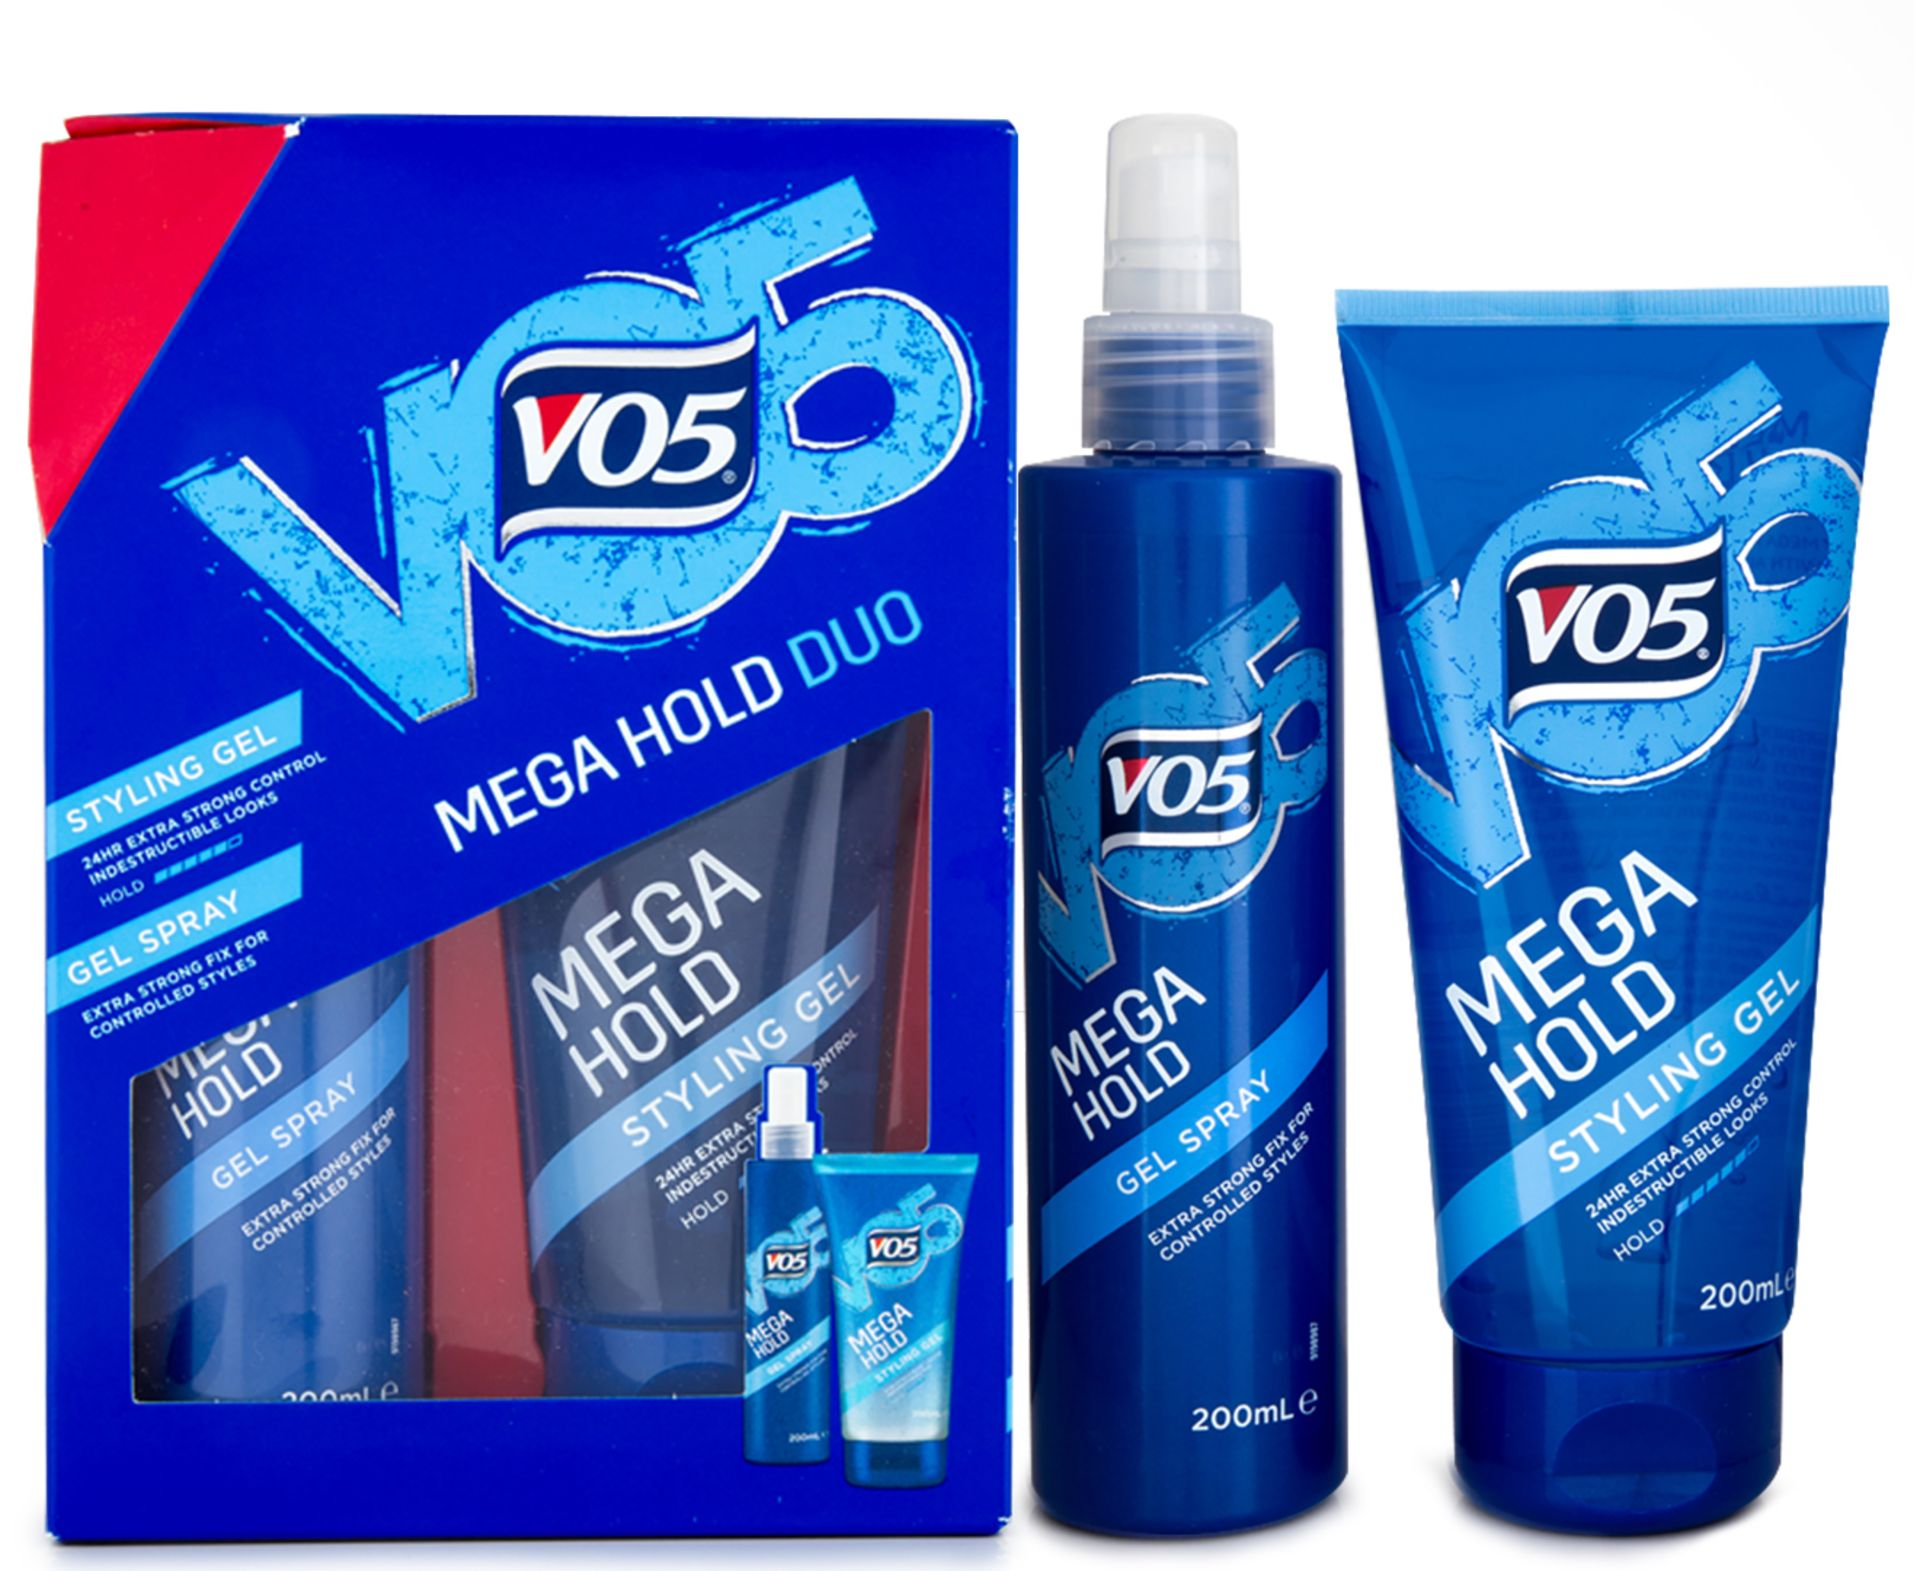 Lot 10036 - V Brand New Vo5 Mega Hold Duo Gift Set Inc 24HR Extra Strong Control Styling Gel & Extra Strong